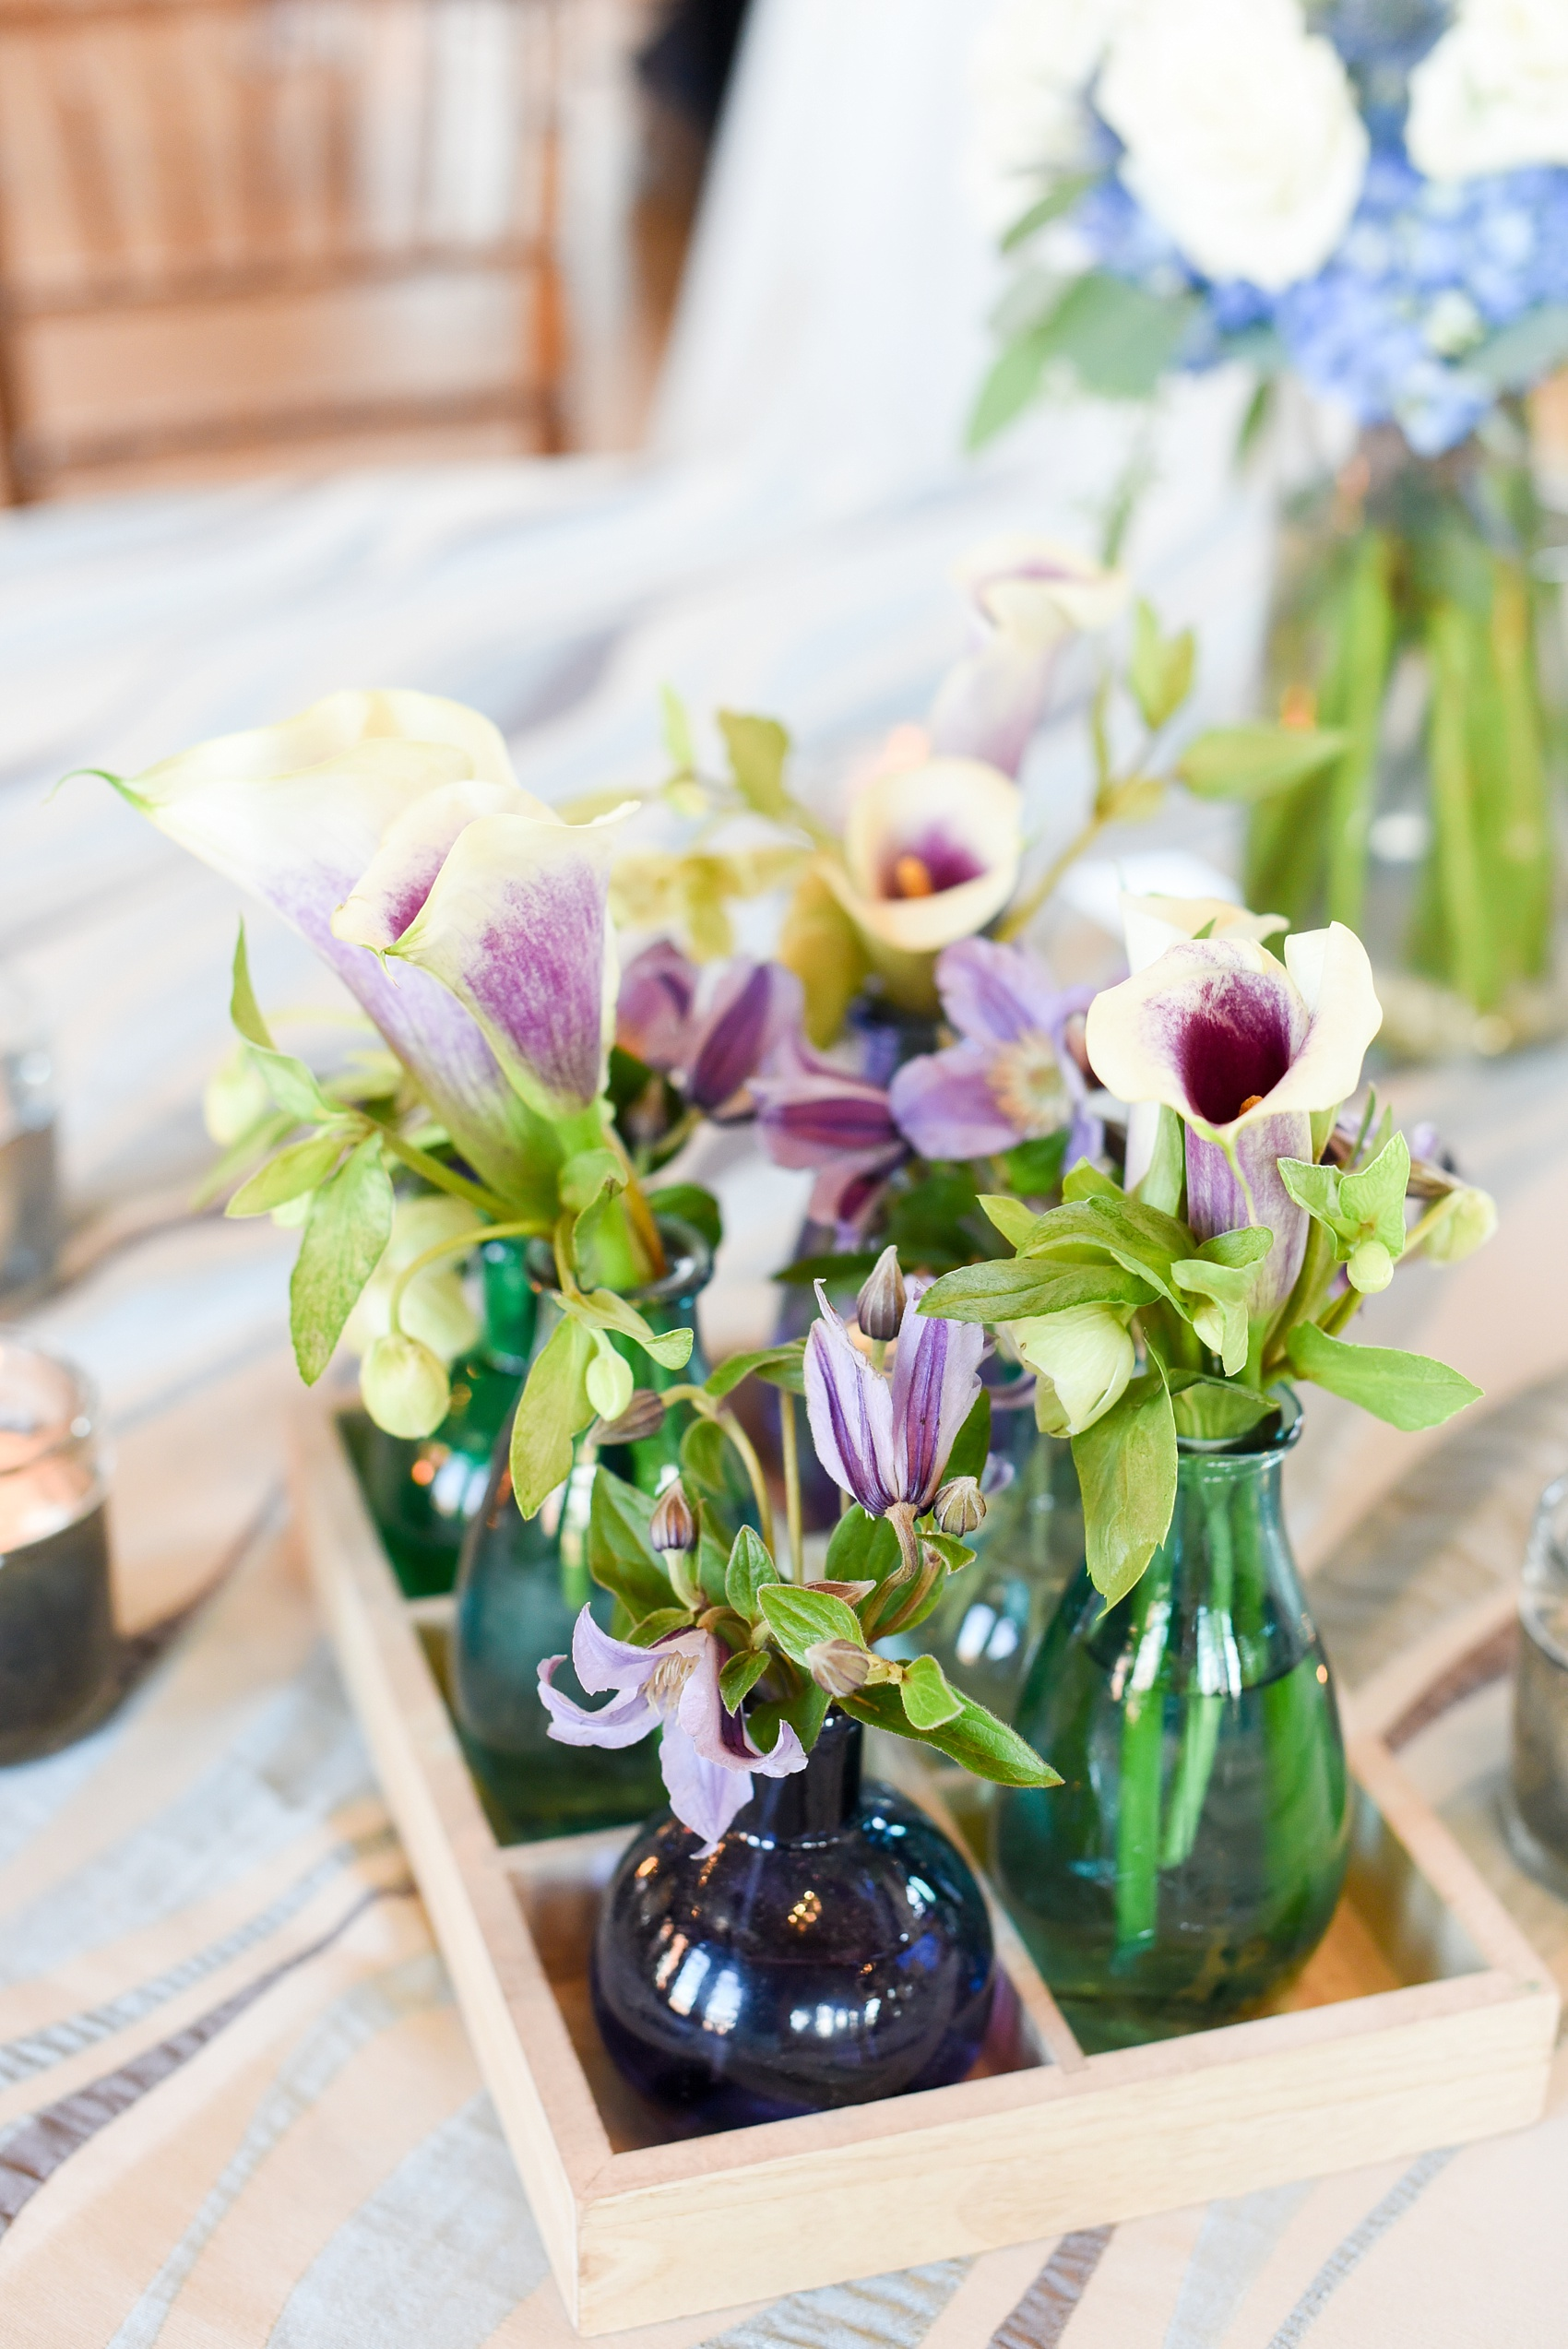 Mikkel Paige Photography image from The Cotton Room wedding venue in Durham, NC. Fresh flowers in bud vases of varying blue shades sat in a rustic wooden tray container. Picasso calla lilies and helleborus flowers completed the look.